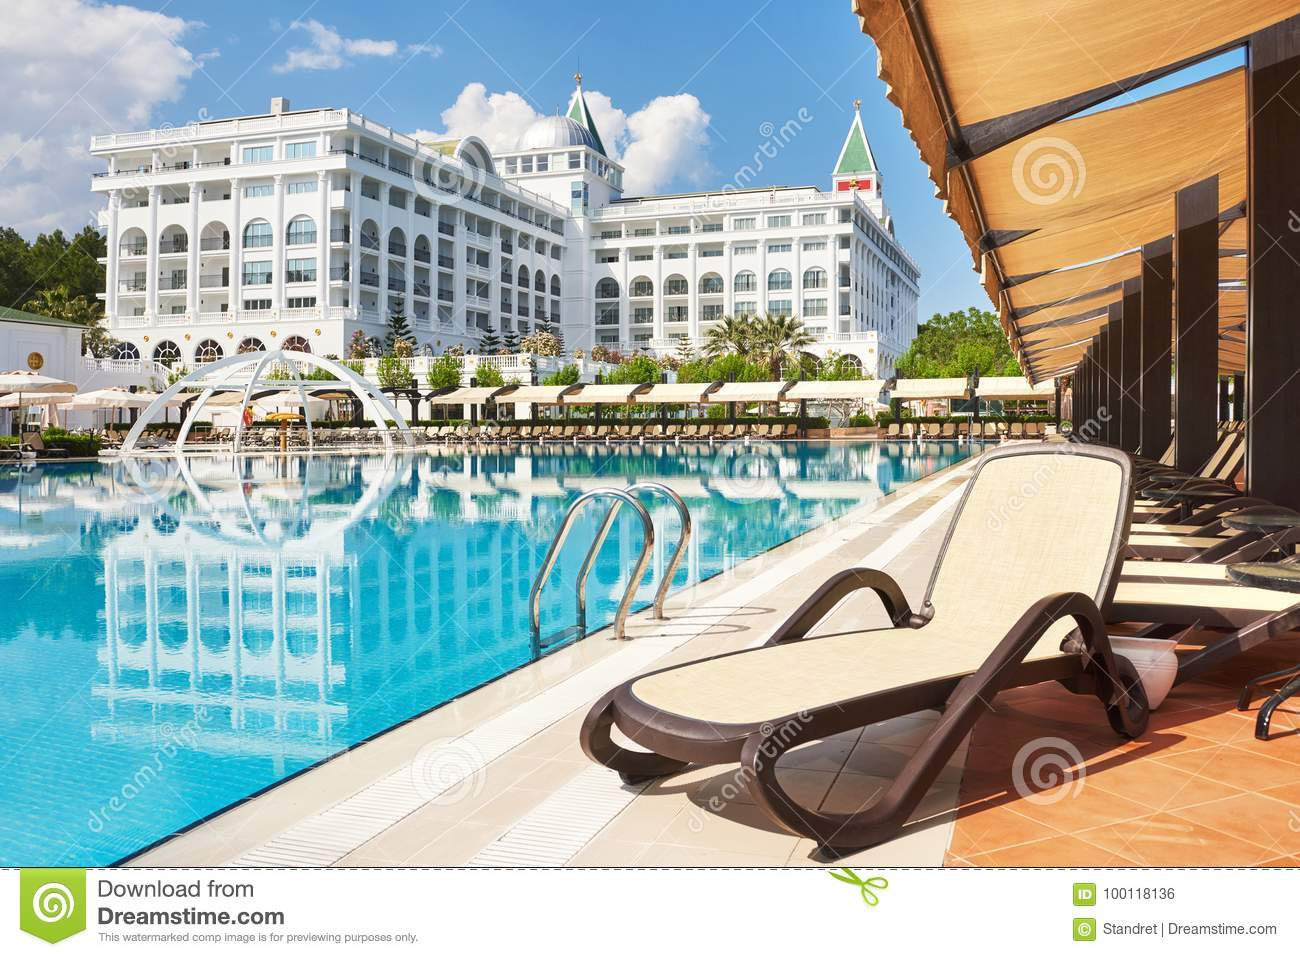 The Popular Resort Amara Dolce Vita Luxury Hotel With Pools And